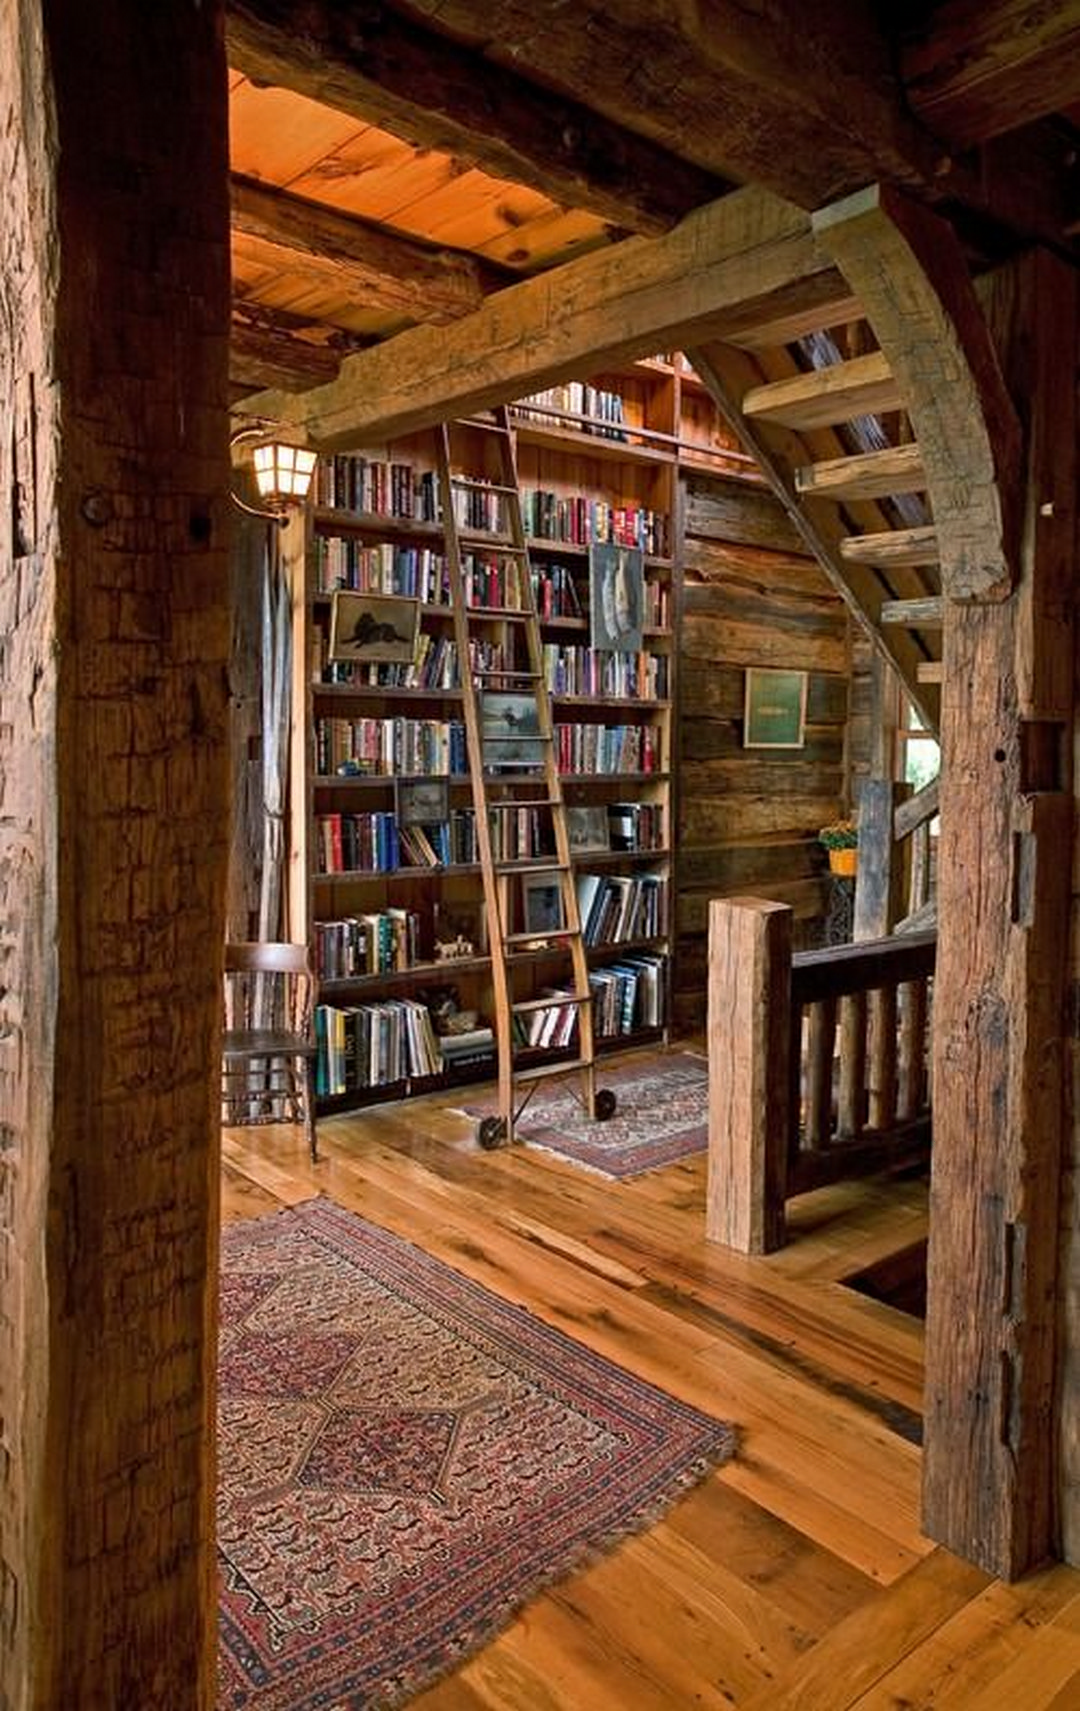 Medium Of Rustic Home Library